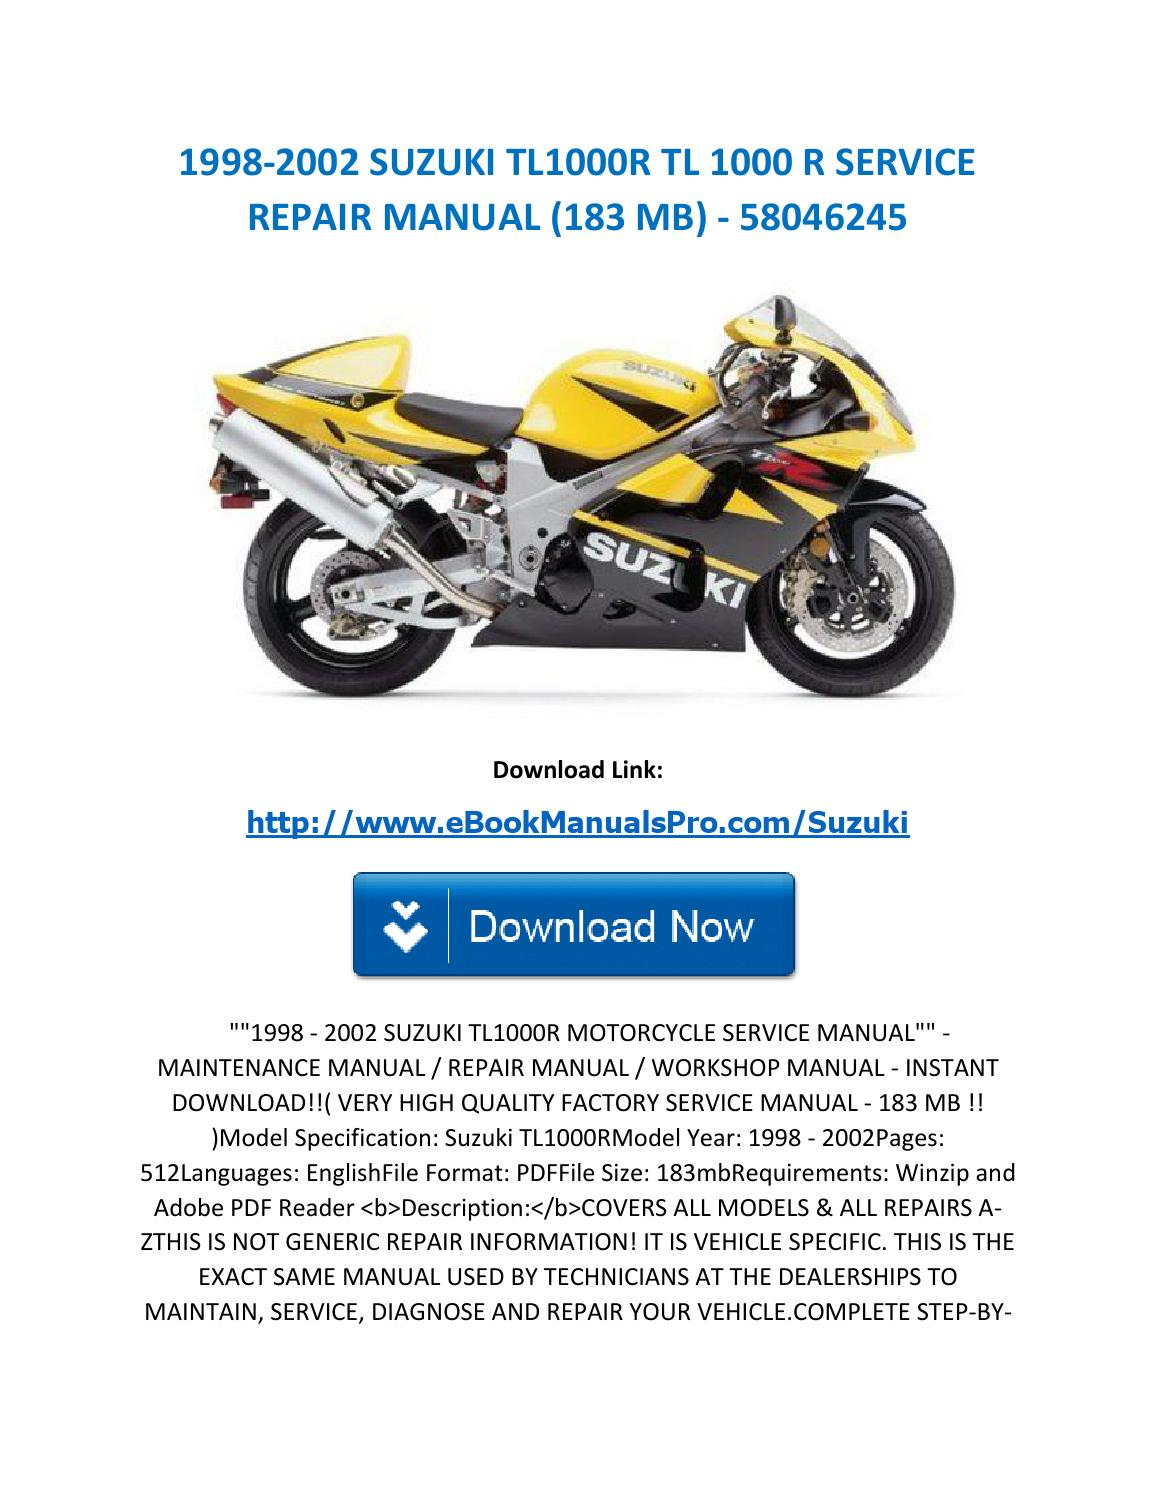 1998 2002 suzuki tl1000r tl 1000 r service repair manual (183 mb) 58046245  by ebookmanualspro - issuu